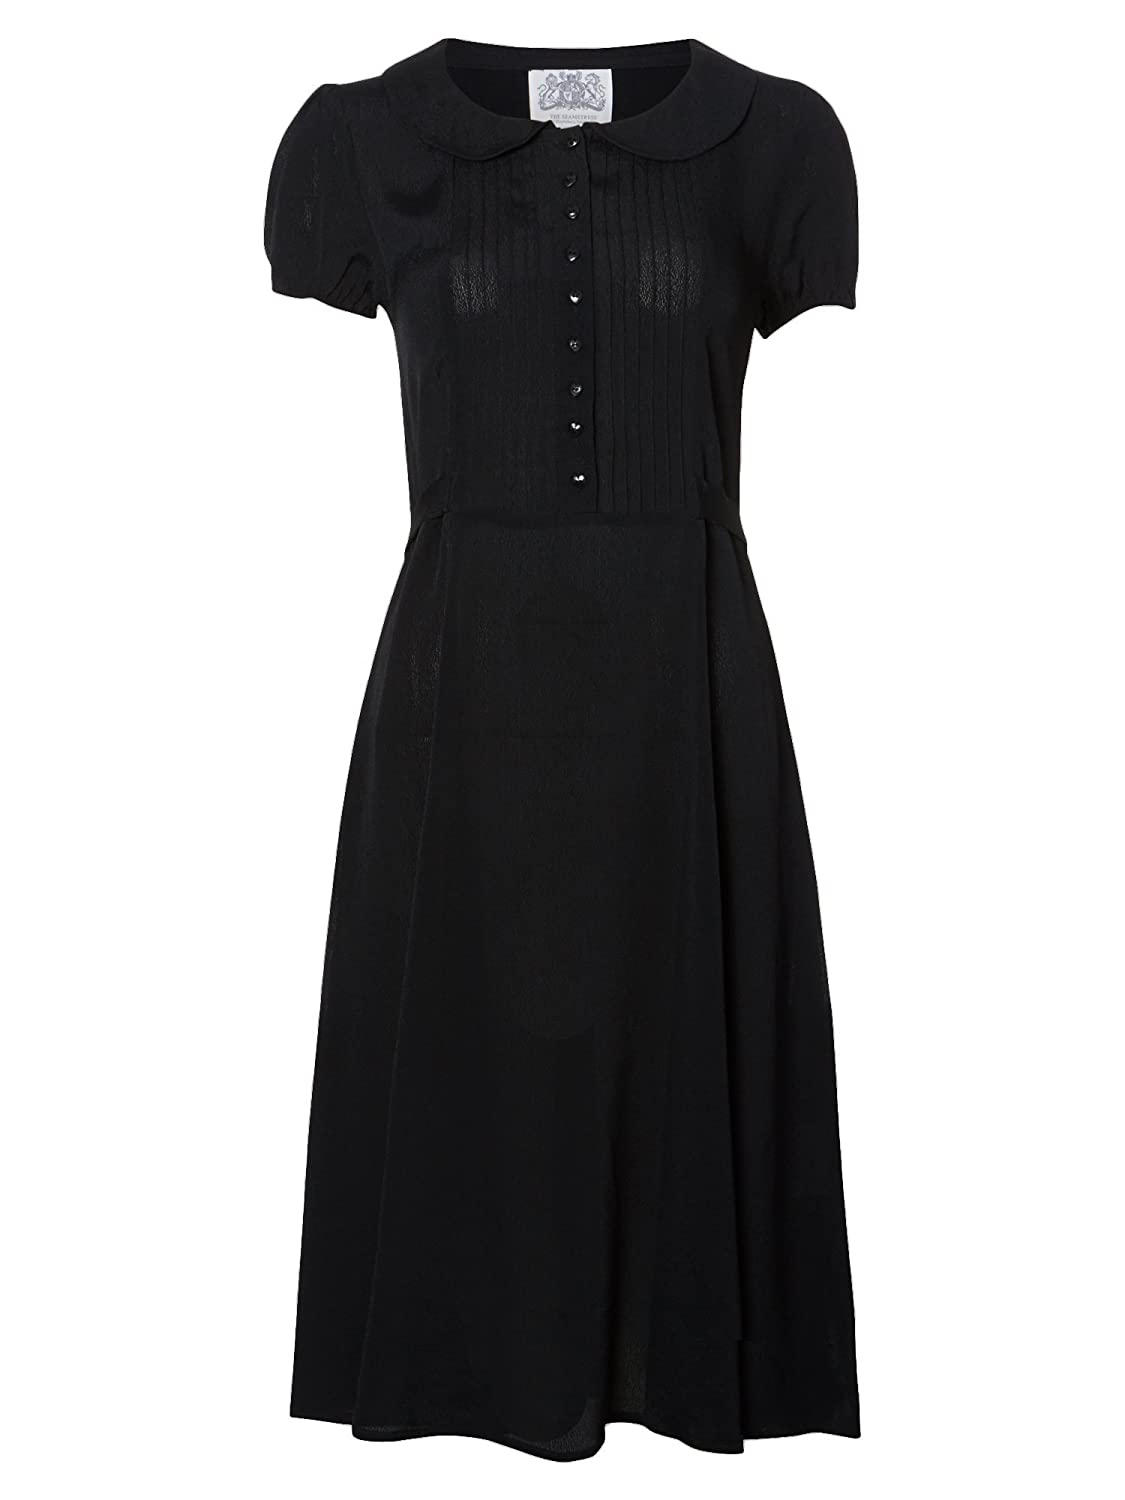 1940s Dresses | 40s Dress, Swing Dress 1940s Authentic Vintage Inspired Dorothy Dress in Black £79.00 AT vintagedancer.com